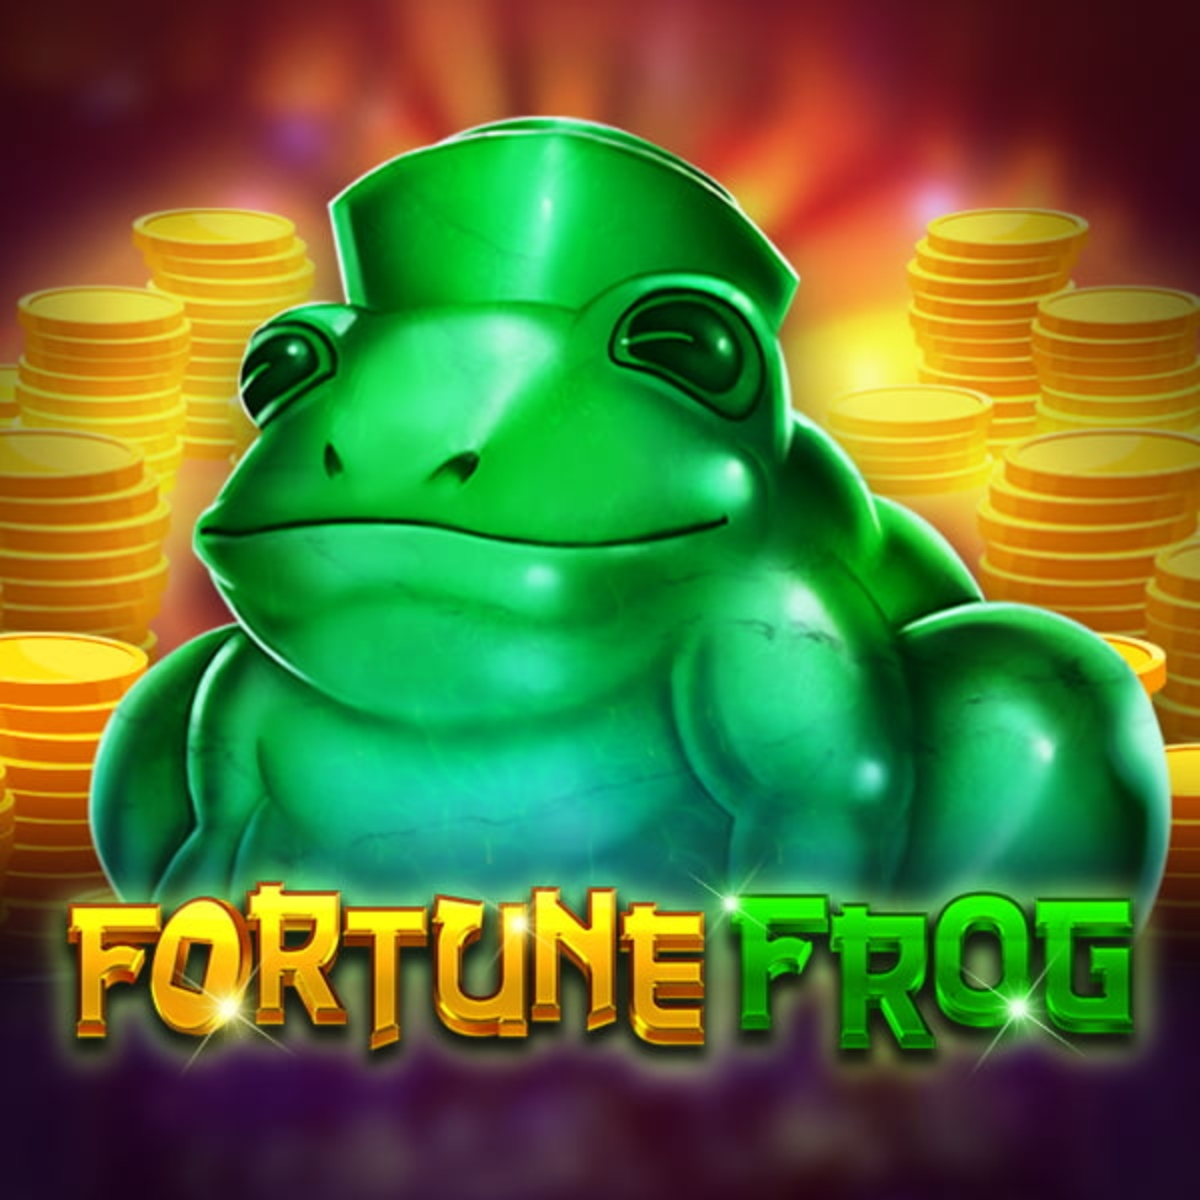 The Fortune Frog (Top Trend Gaming) Online Slot Demo Game by Top Trend Gaming